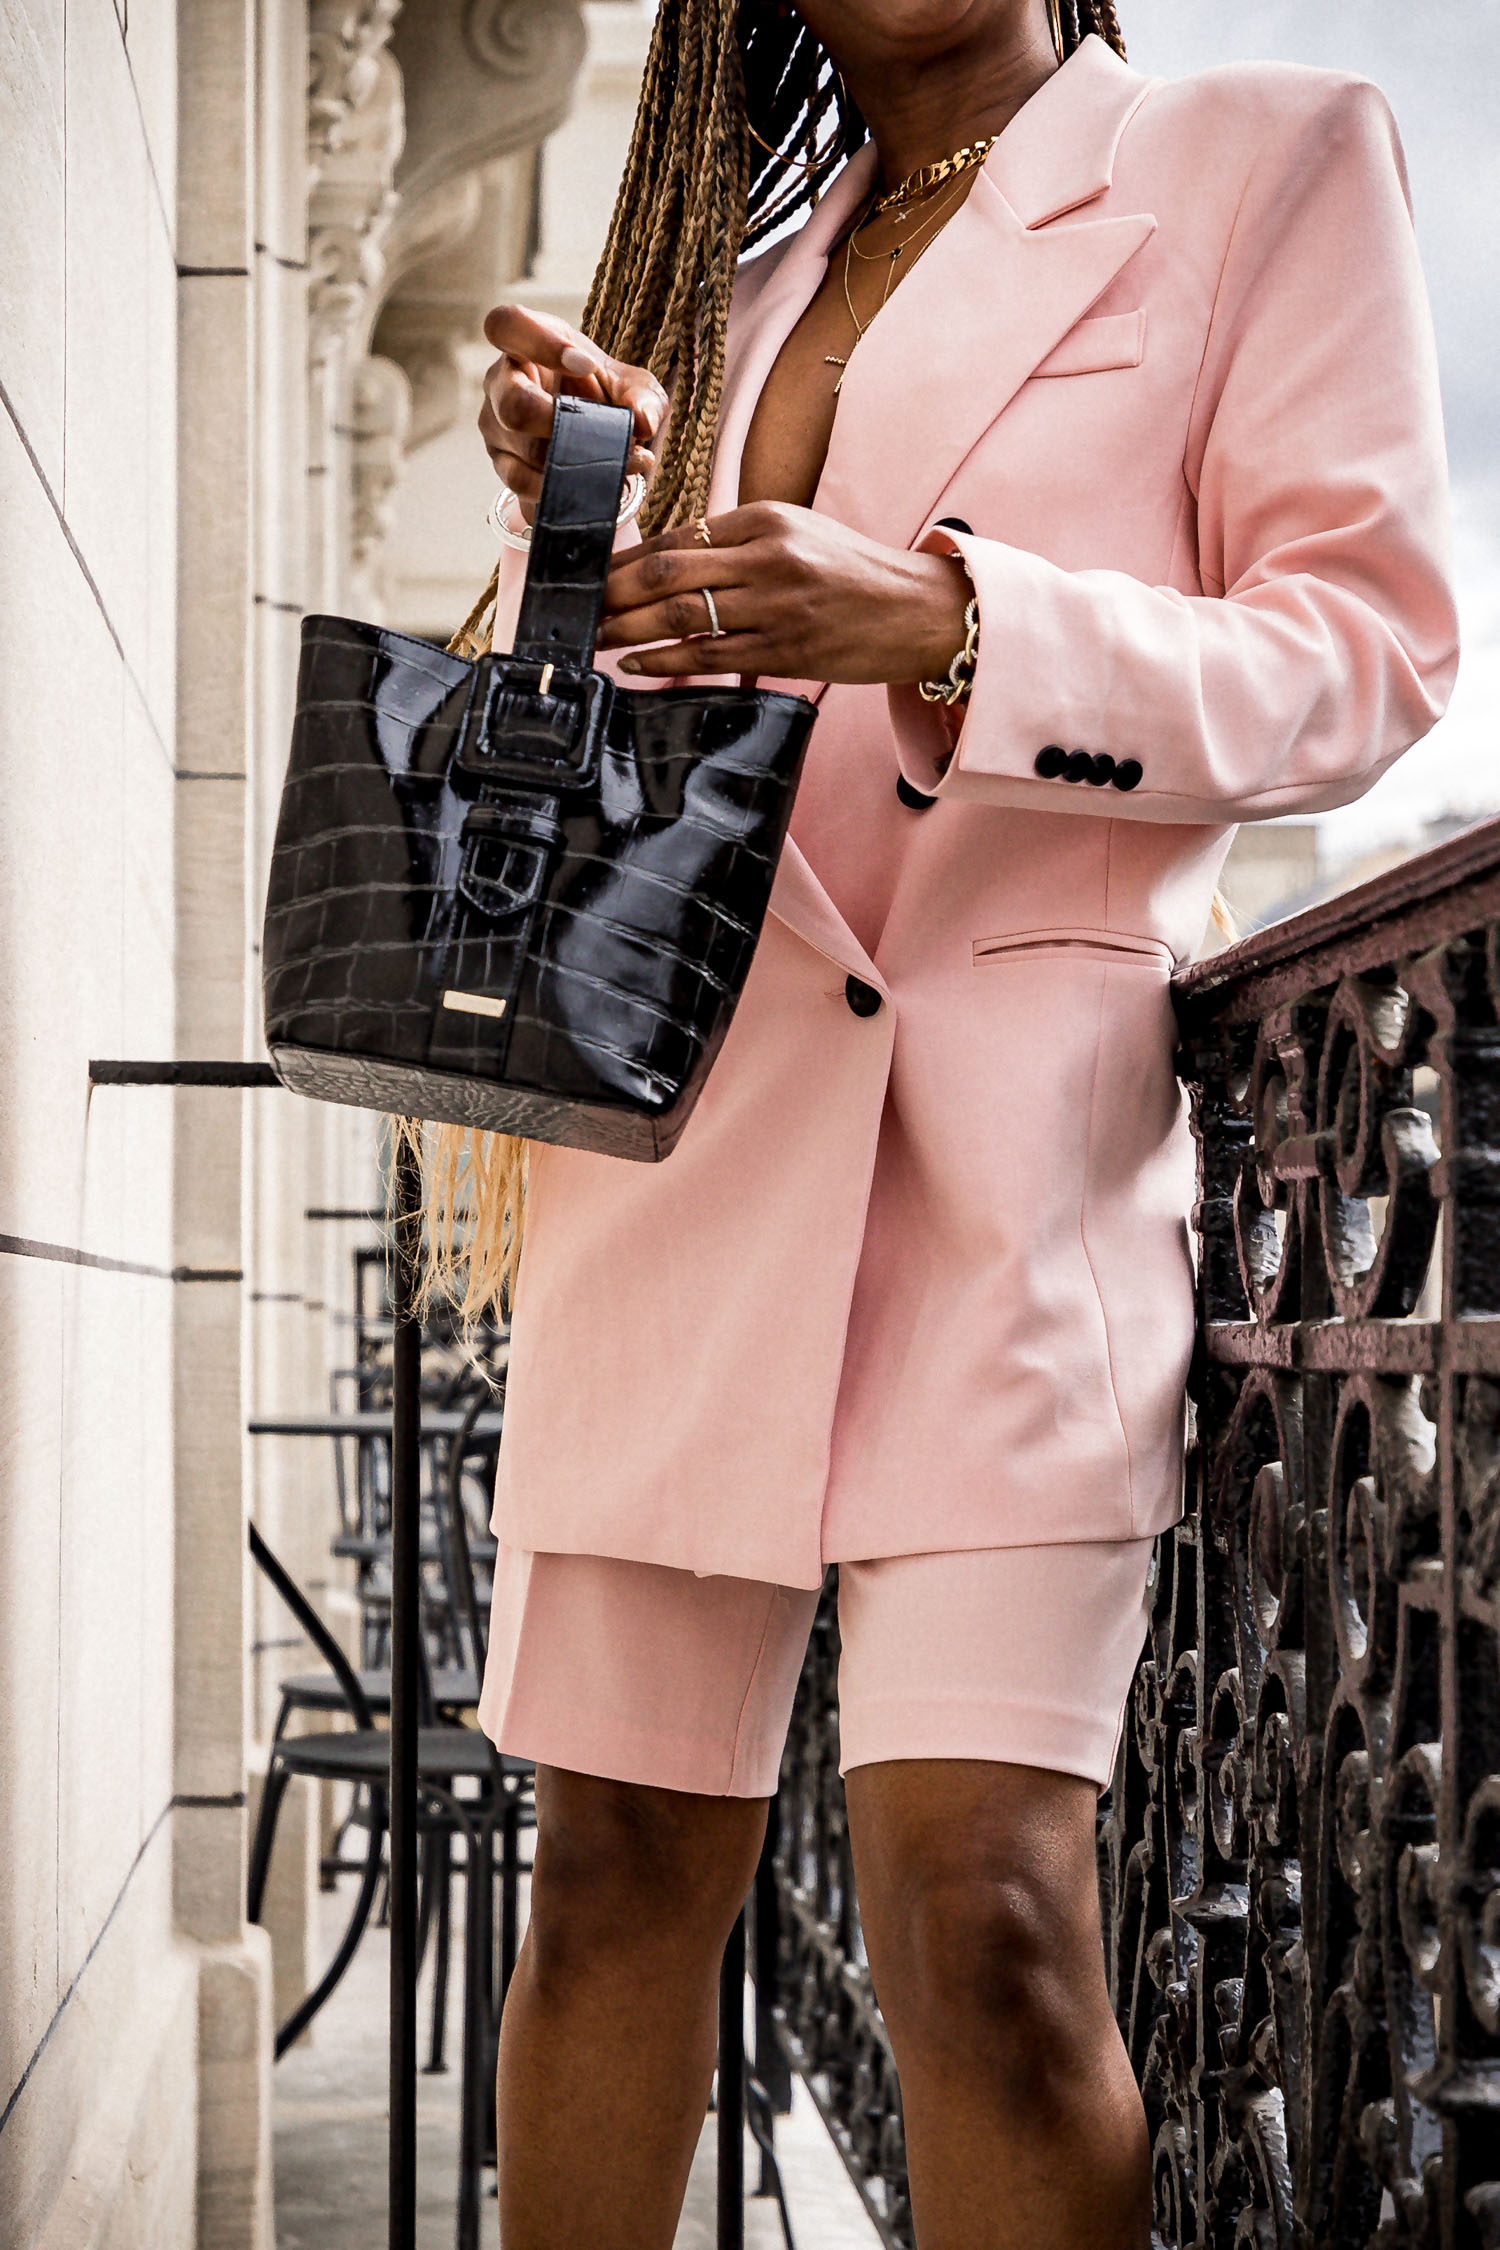 fashion blogger wearing pink oversized suit and brahmin faith bag, frankie shop pink suit, oversized suit, short suit set, neta porter, bottega ventta stretch sandals, paris fashion week, pfw, what to wear to paris fashion week, double-breast suit, paris balcony, champs elyse paris